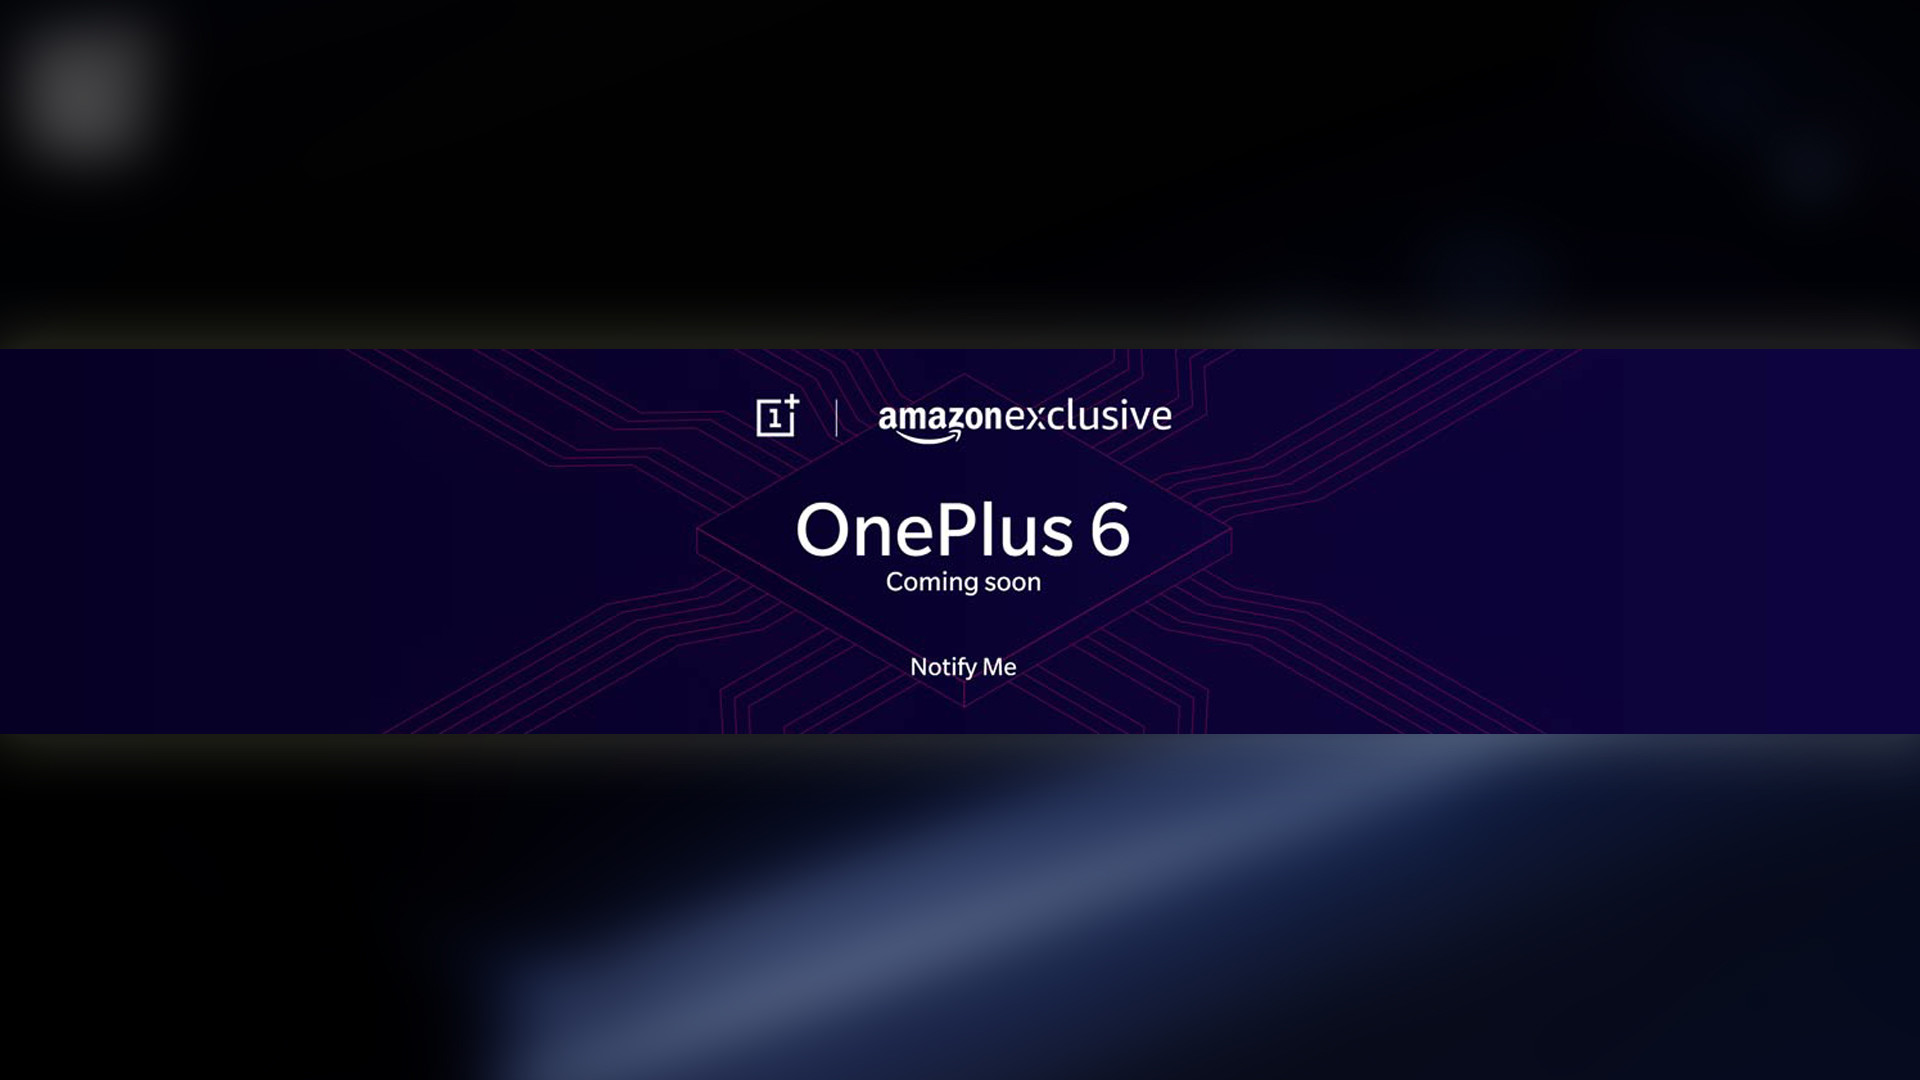 OnePlus 6 may be officially revealed on May 18